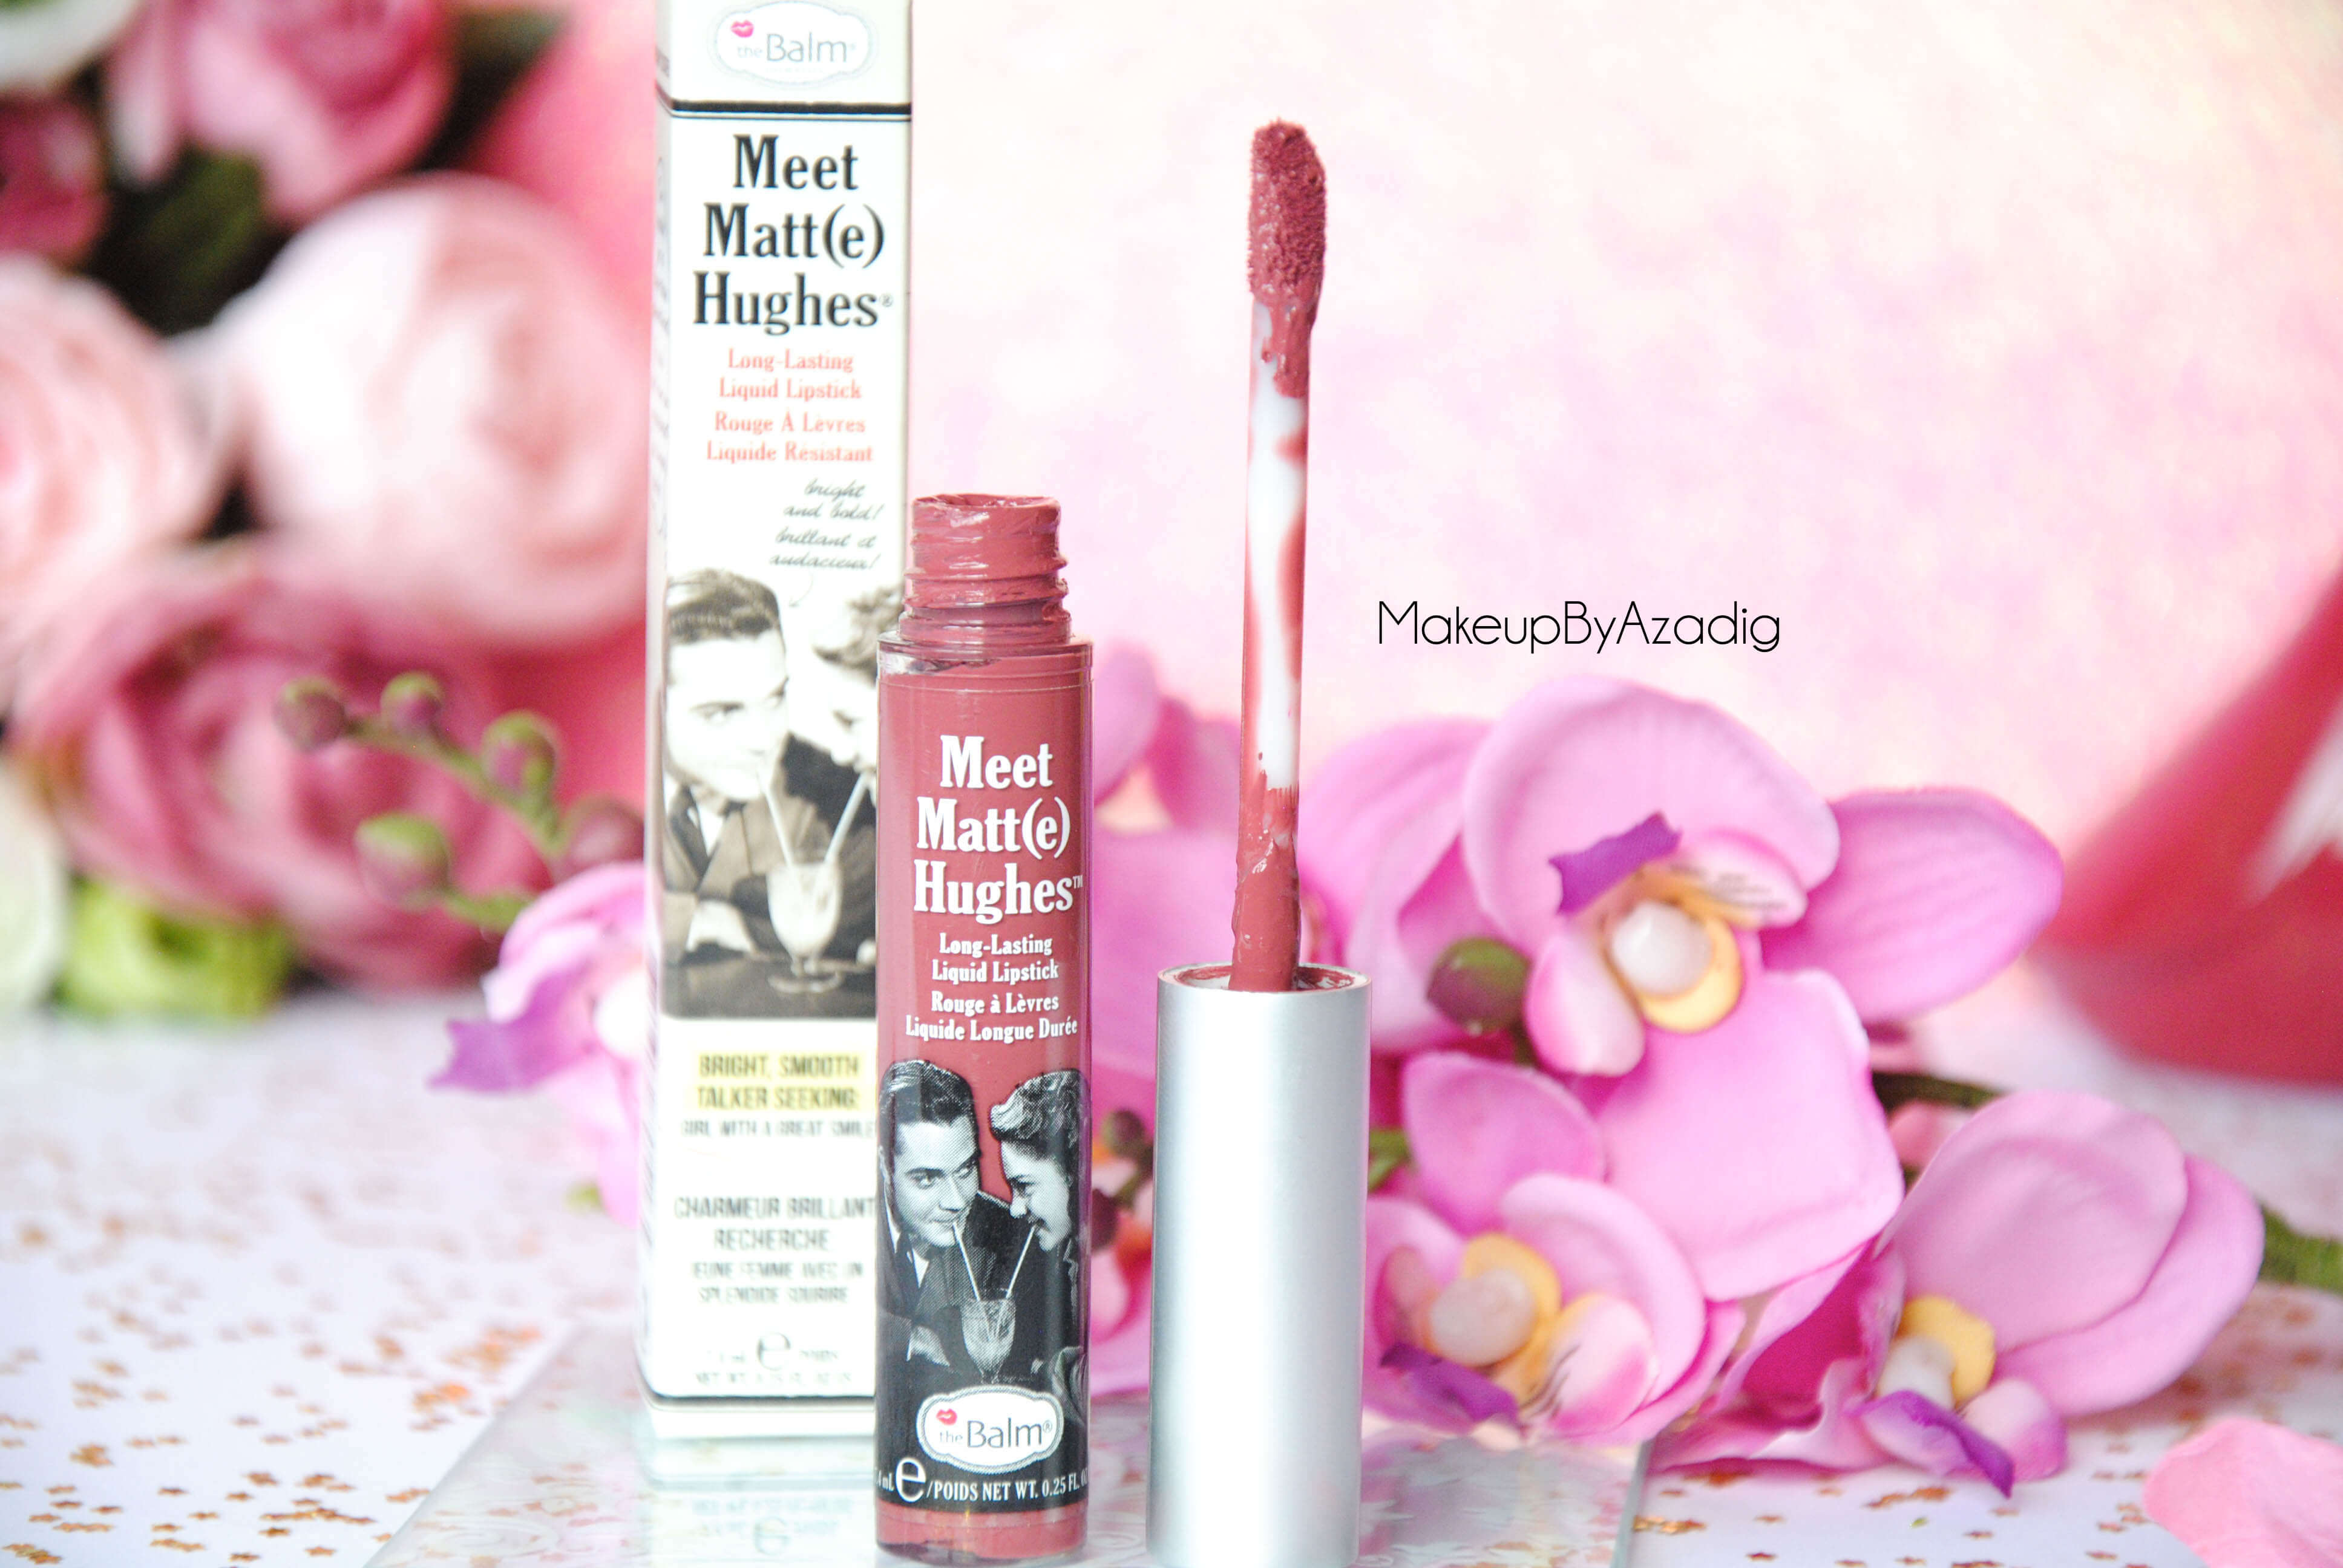 meet-matte-hughes-the-balm-charming-makeupbyazadig-troyes-paris-rouge-levres-liquide-swatch-review